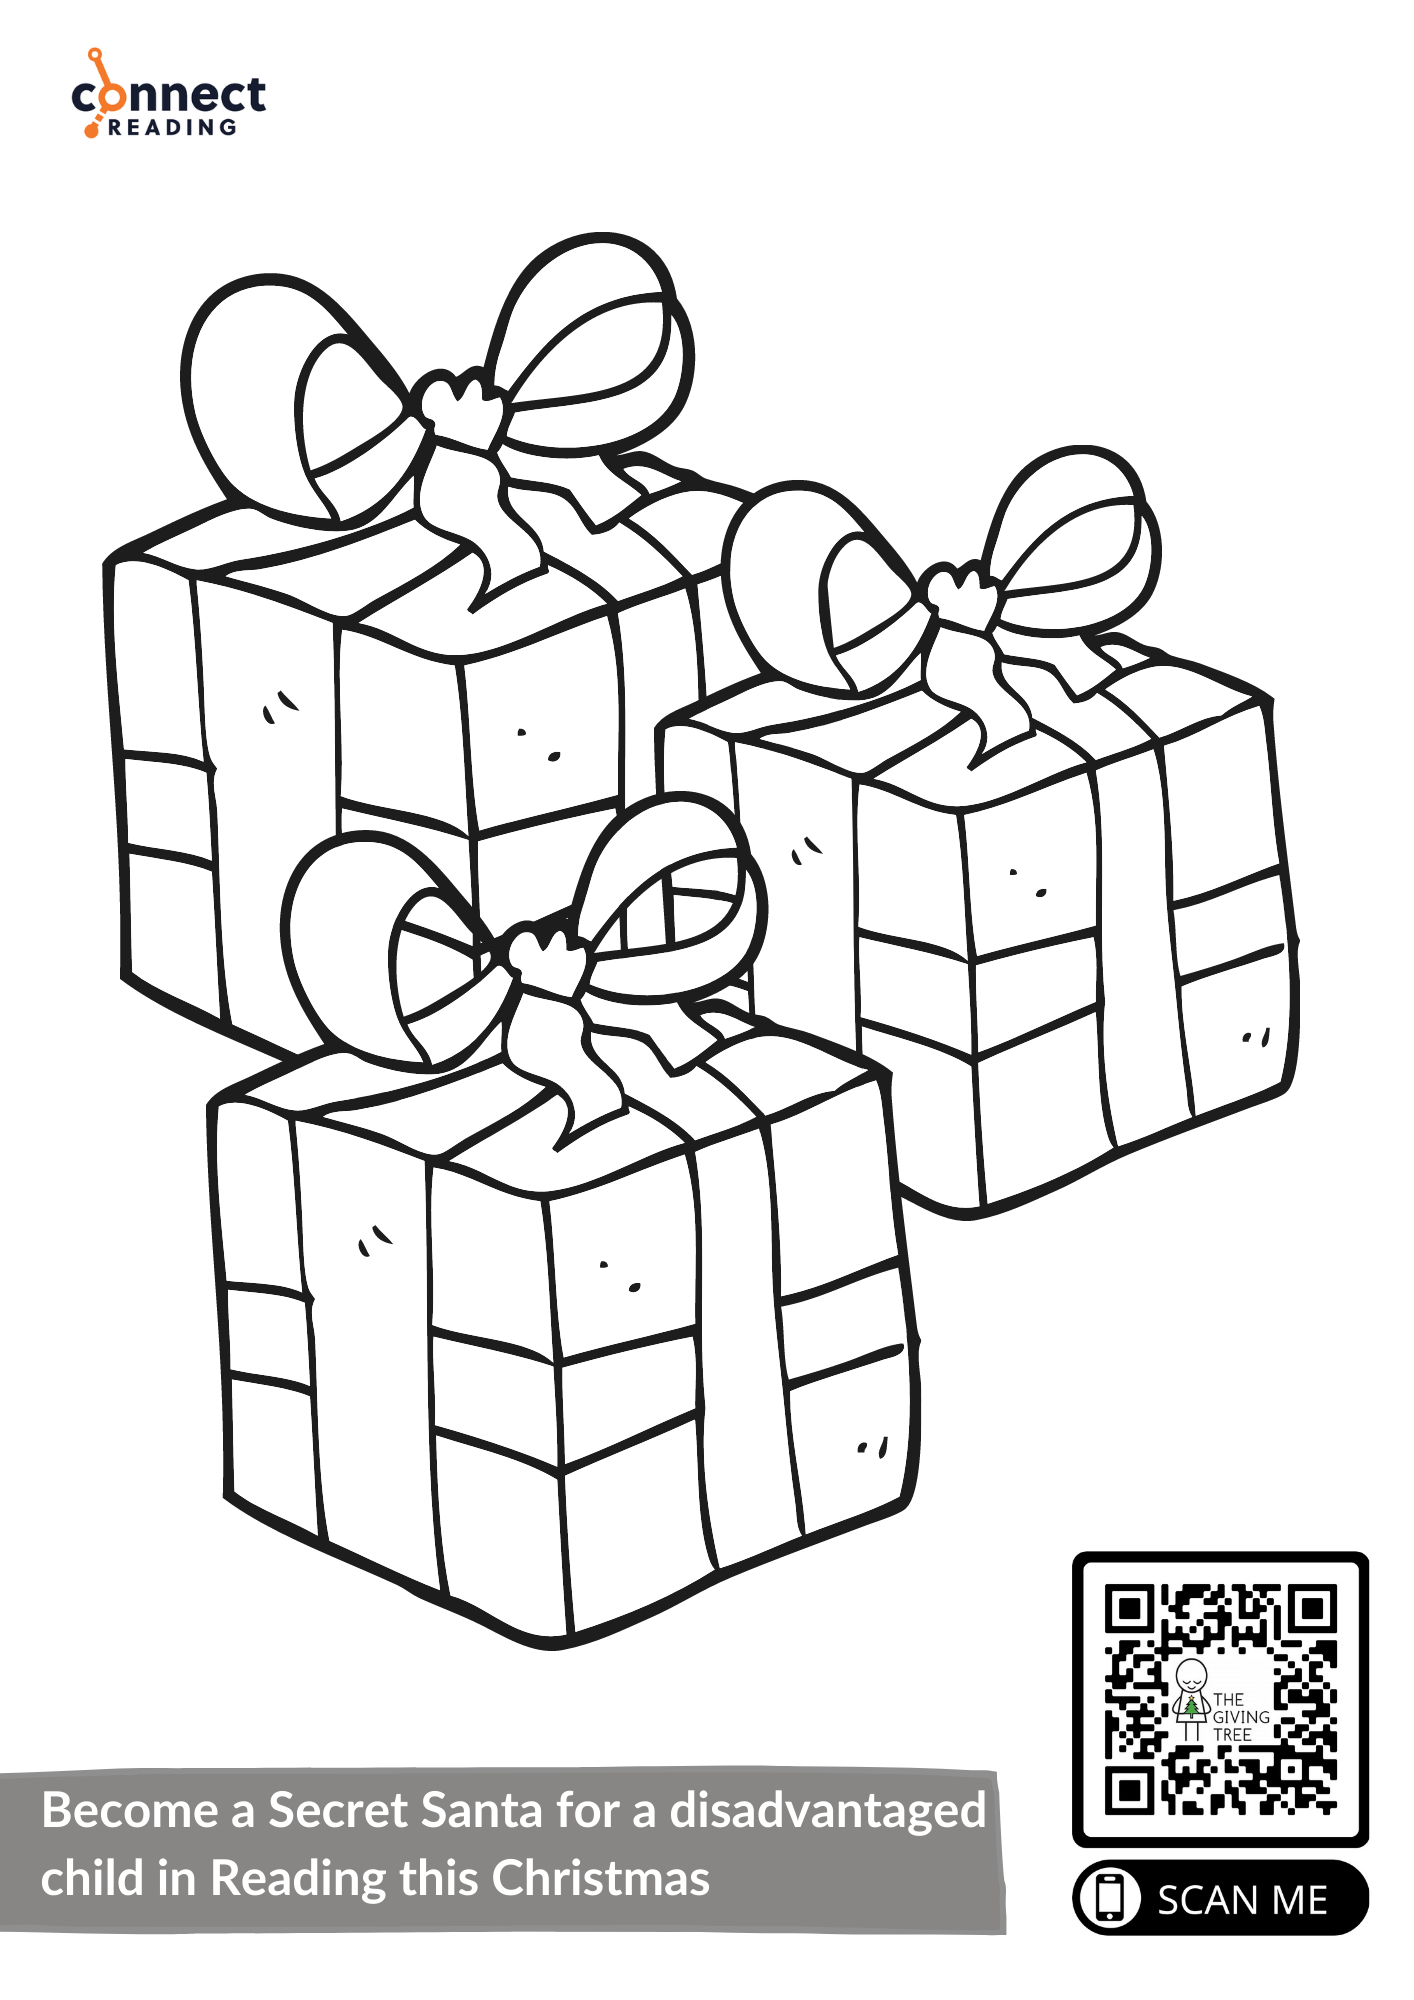 the giving tree coloring page the giving tree colouring sheets connect reading coloring page tree the giving